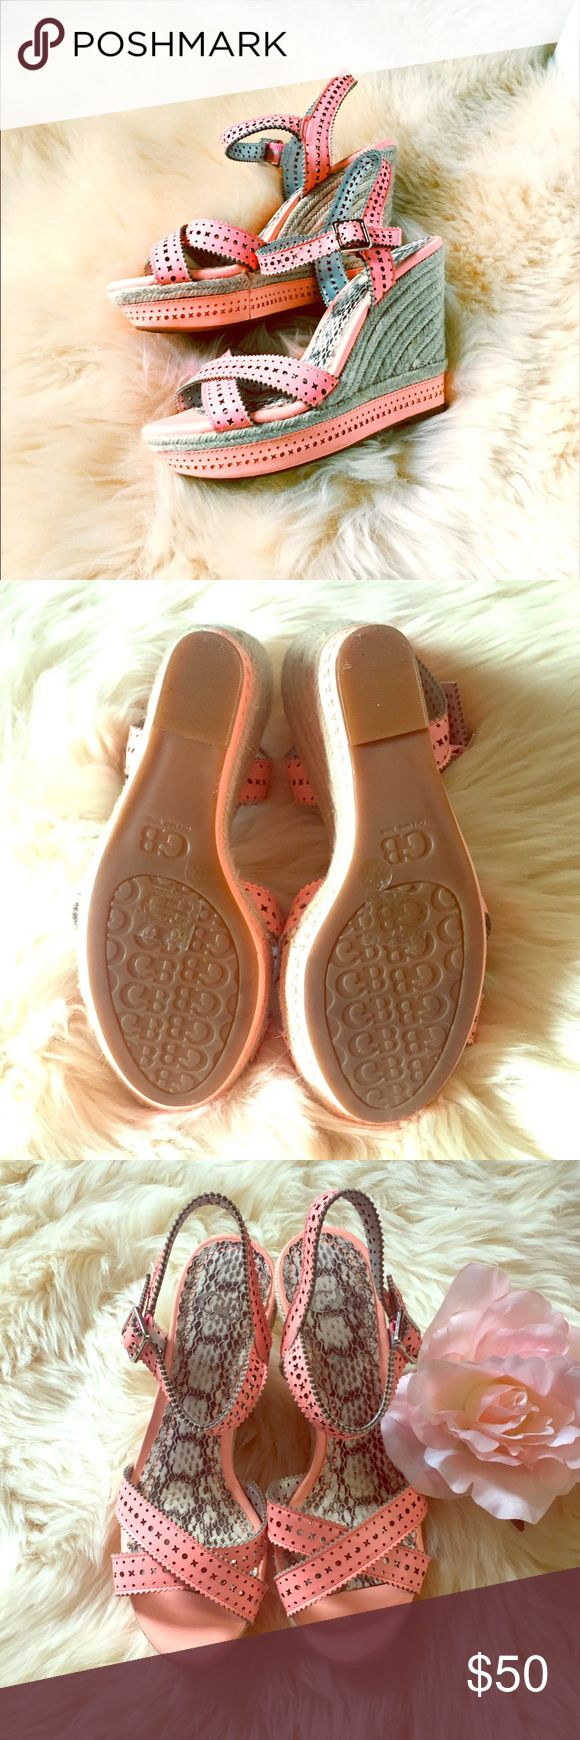 Gianni Bini Pink Espadrille Wedges - NWOT These are so cute and perfect for summer. Never worn. Light weight. Easy to walk in. Gianni Bini Shoes Espadrilles